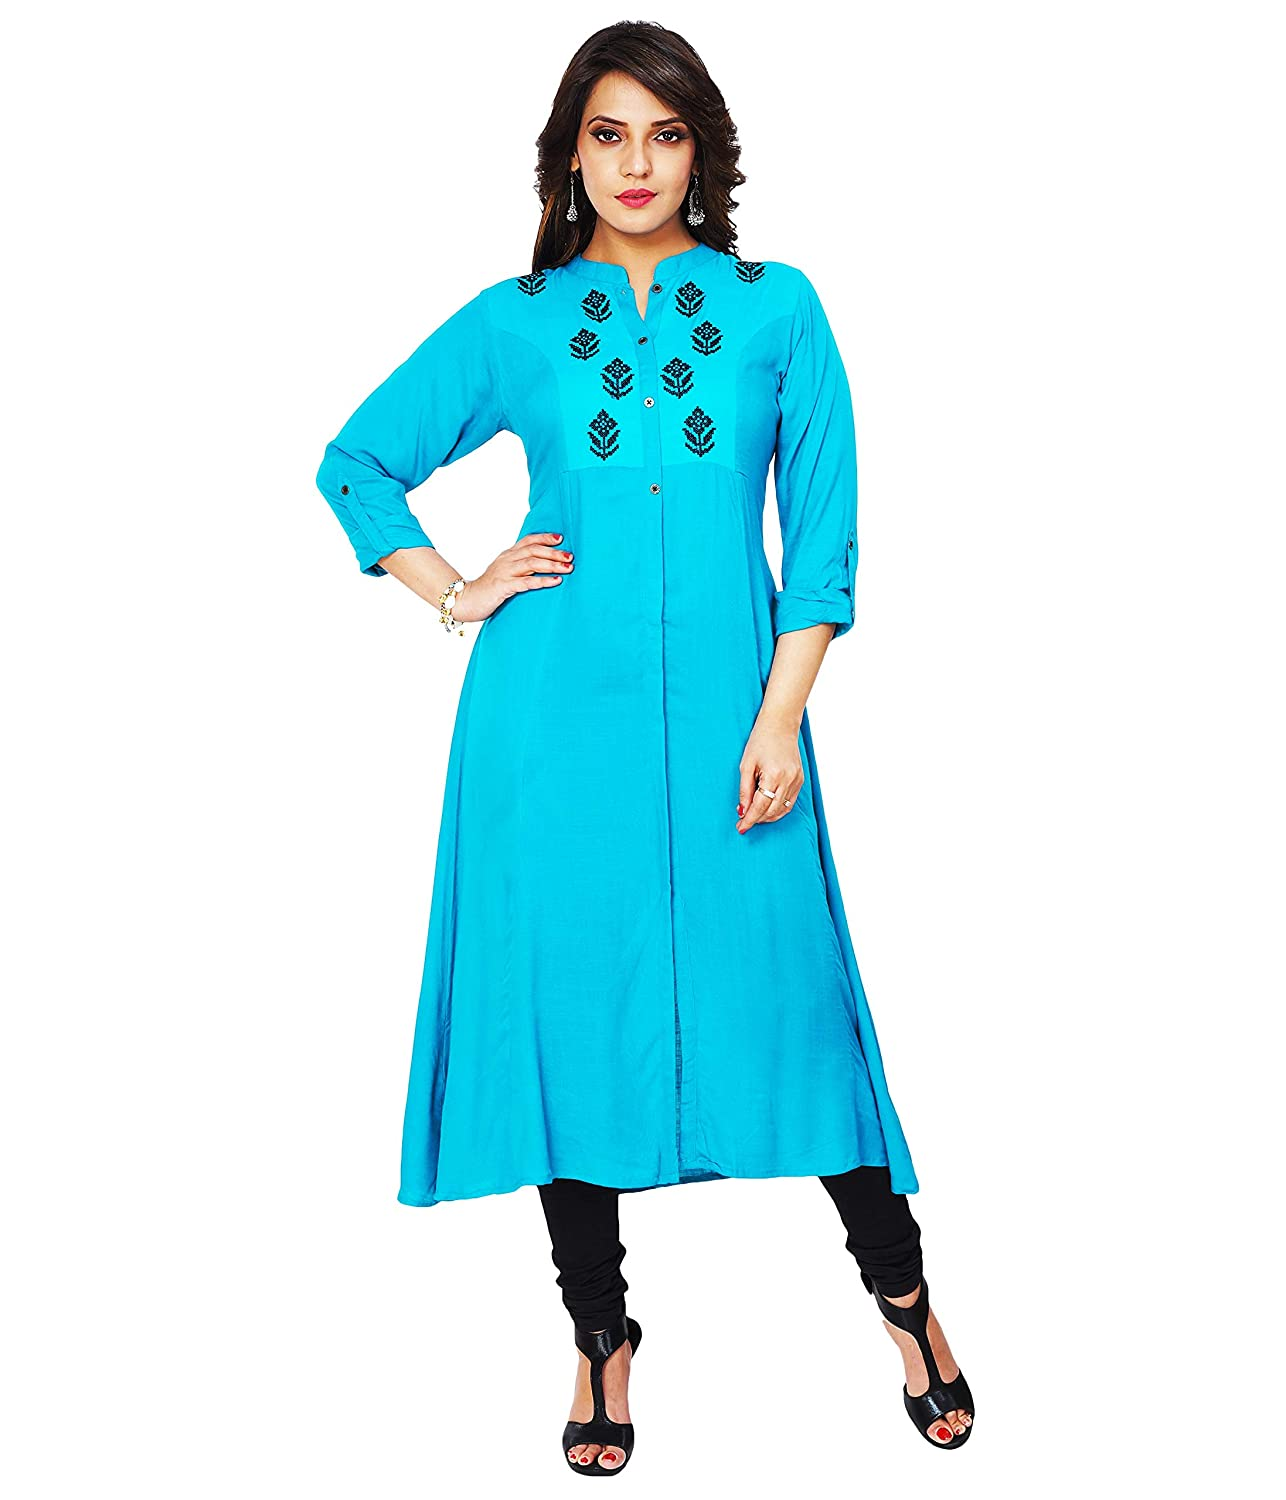 Stand Collar Designs For Kurti : Aarti designs sky blue color sleeves with stand collar